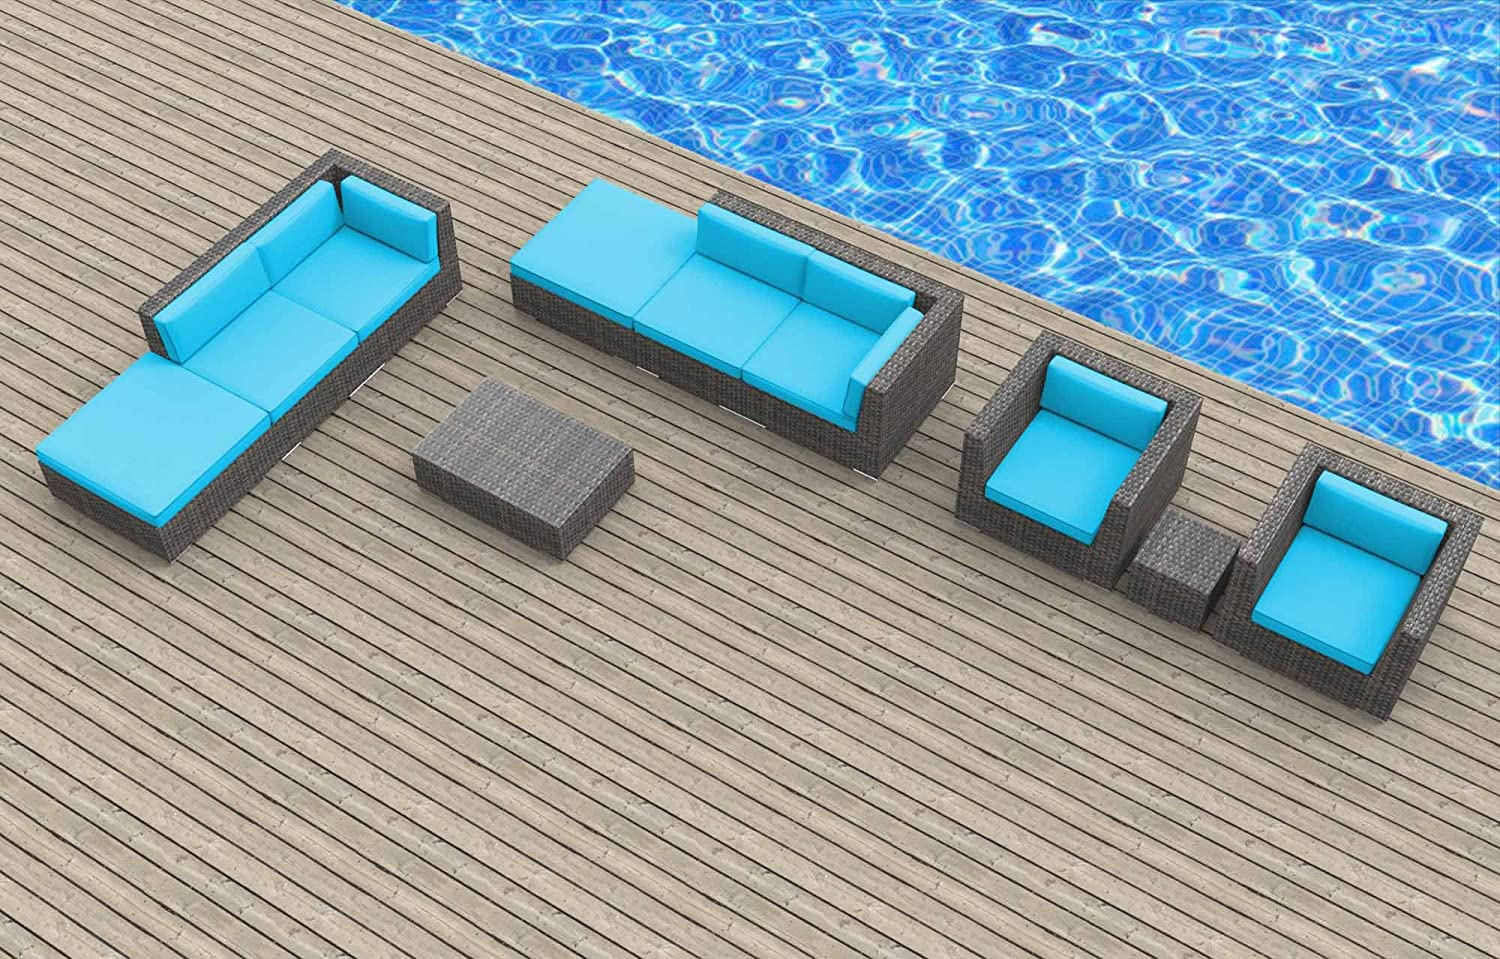 www.urbanfurnishing.net Urban Furnishing - BRUNEI 10pc Modern Outdoor Backyard Wicker Rattan Patio Furniture Sofa Sectional Couch Set - Sea Blue at Sears.com